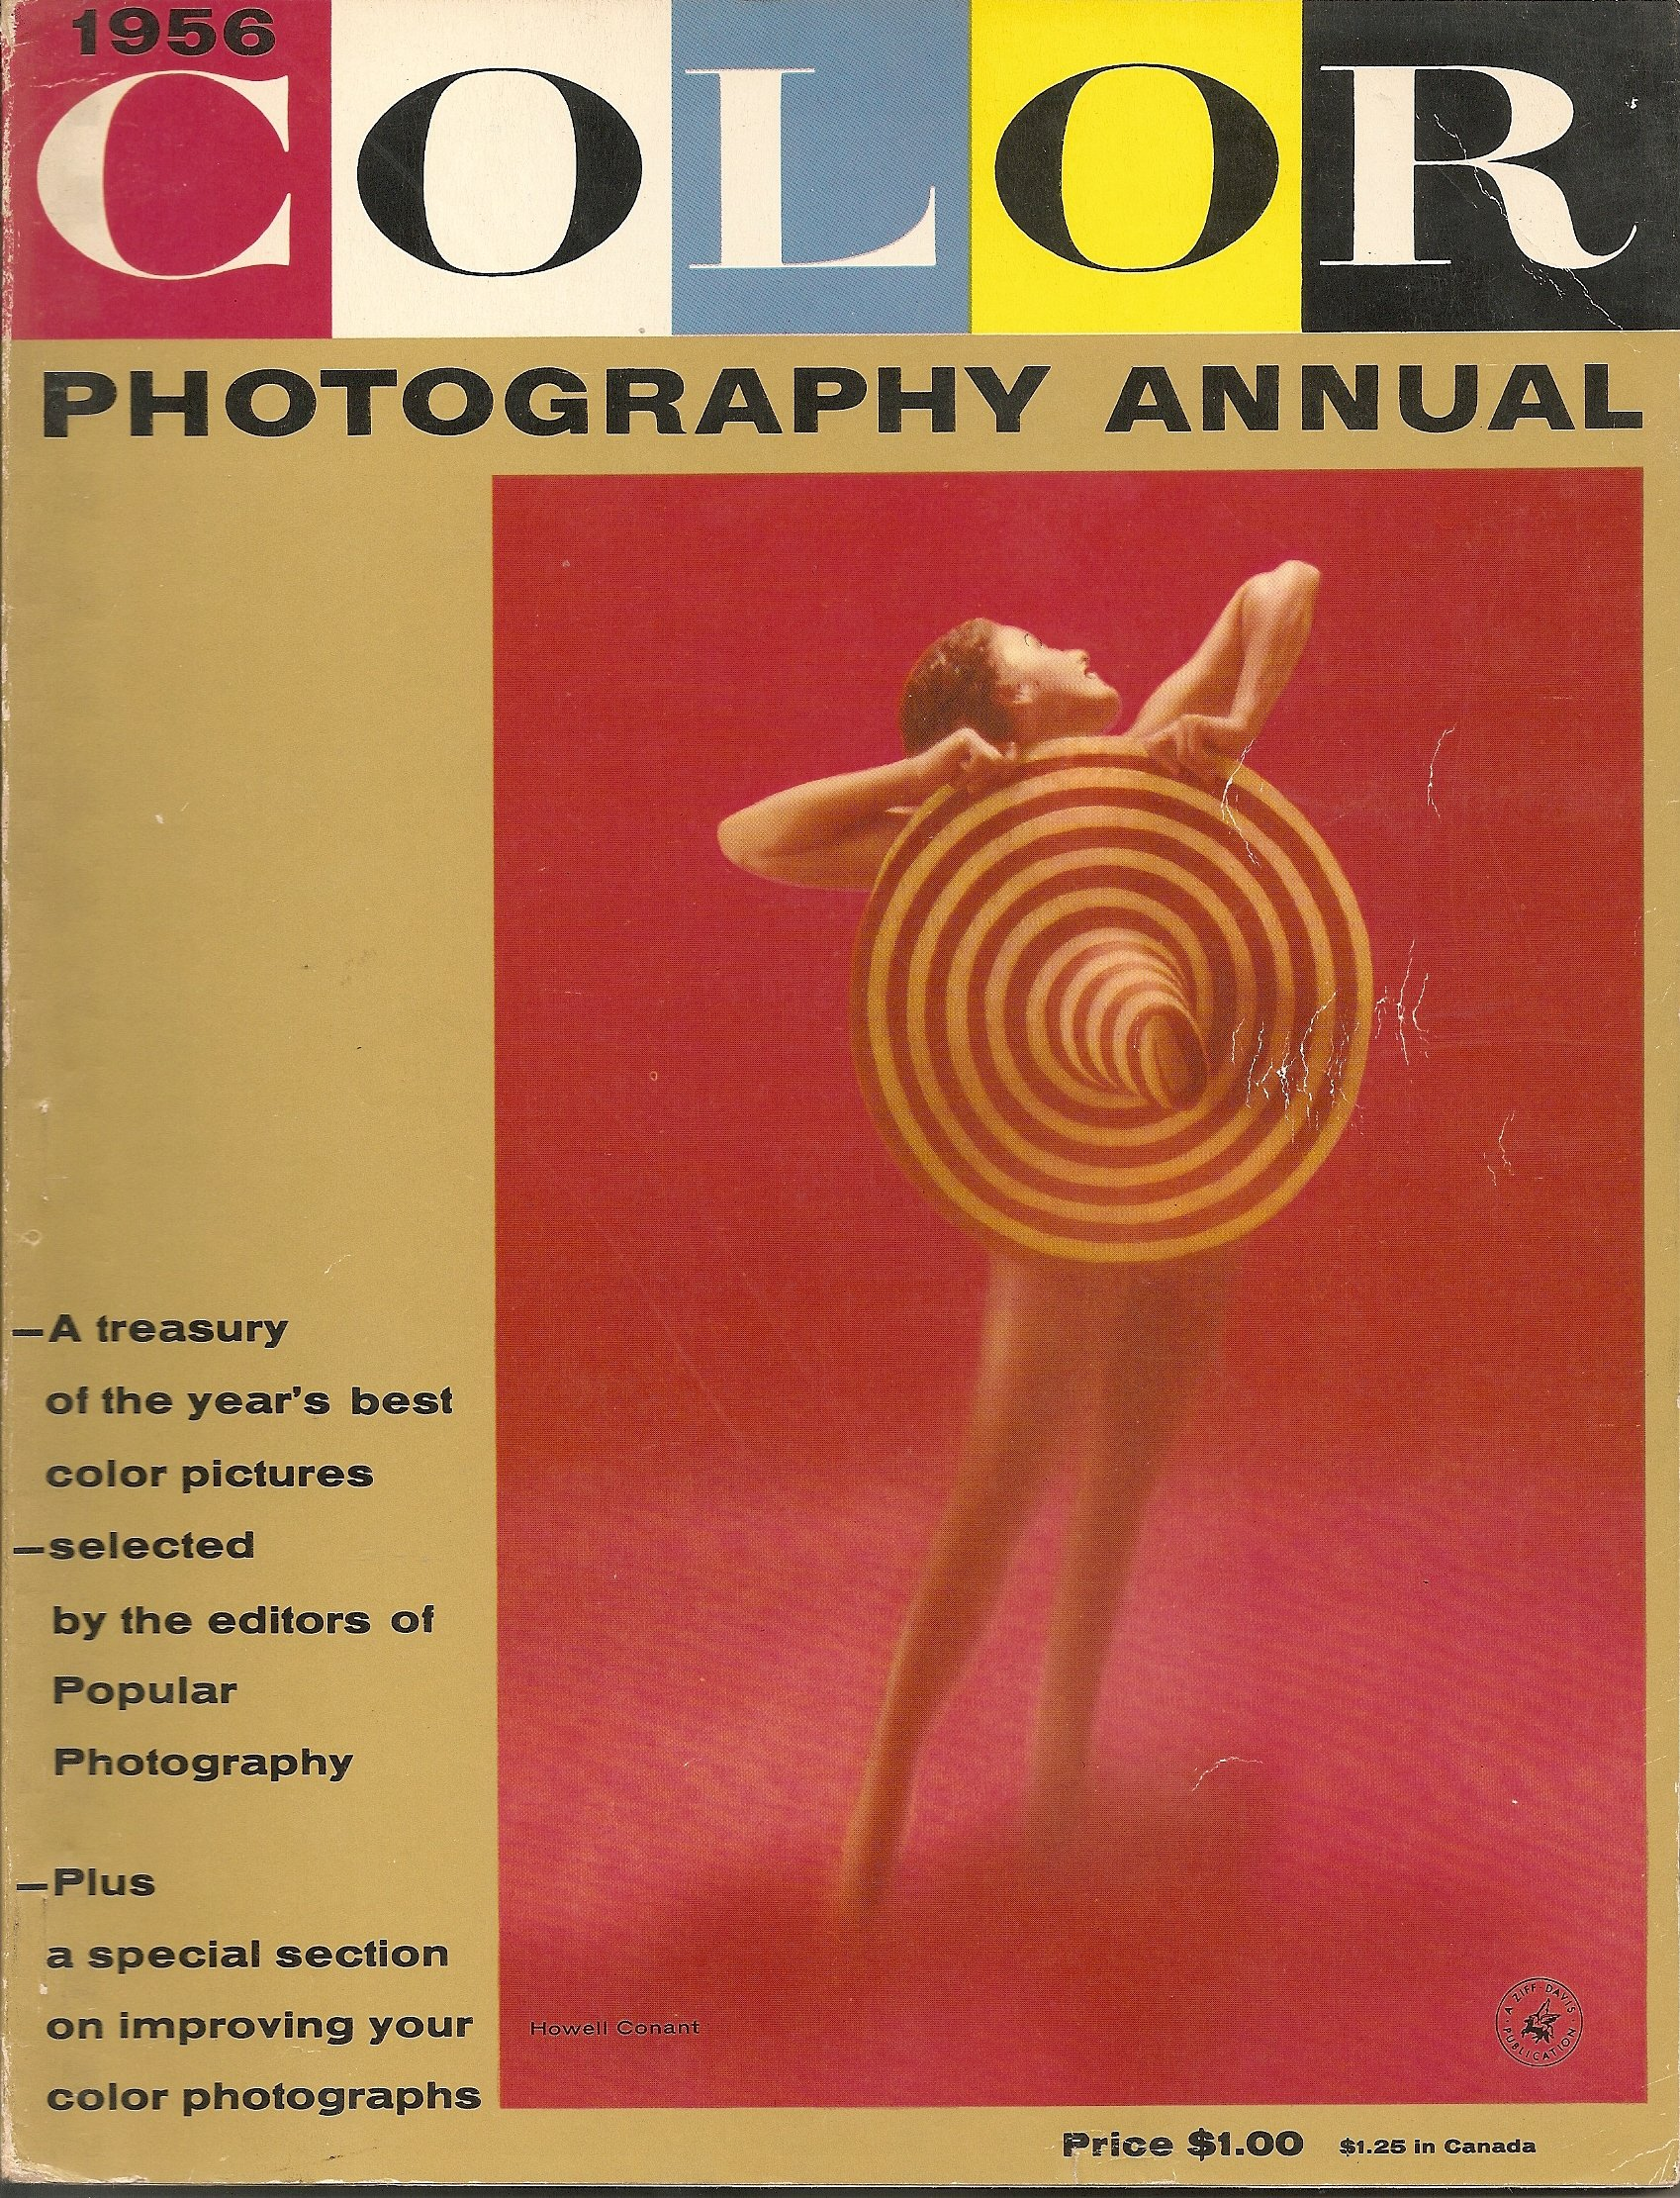 1956 Color Photography Annual